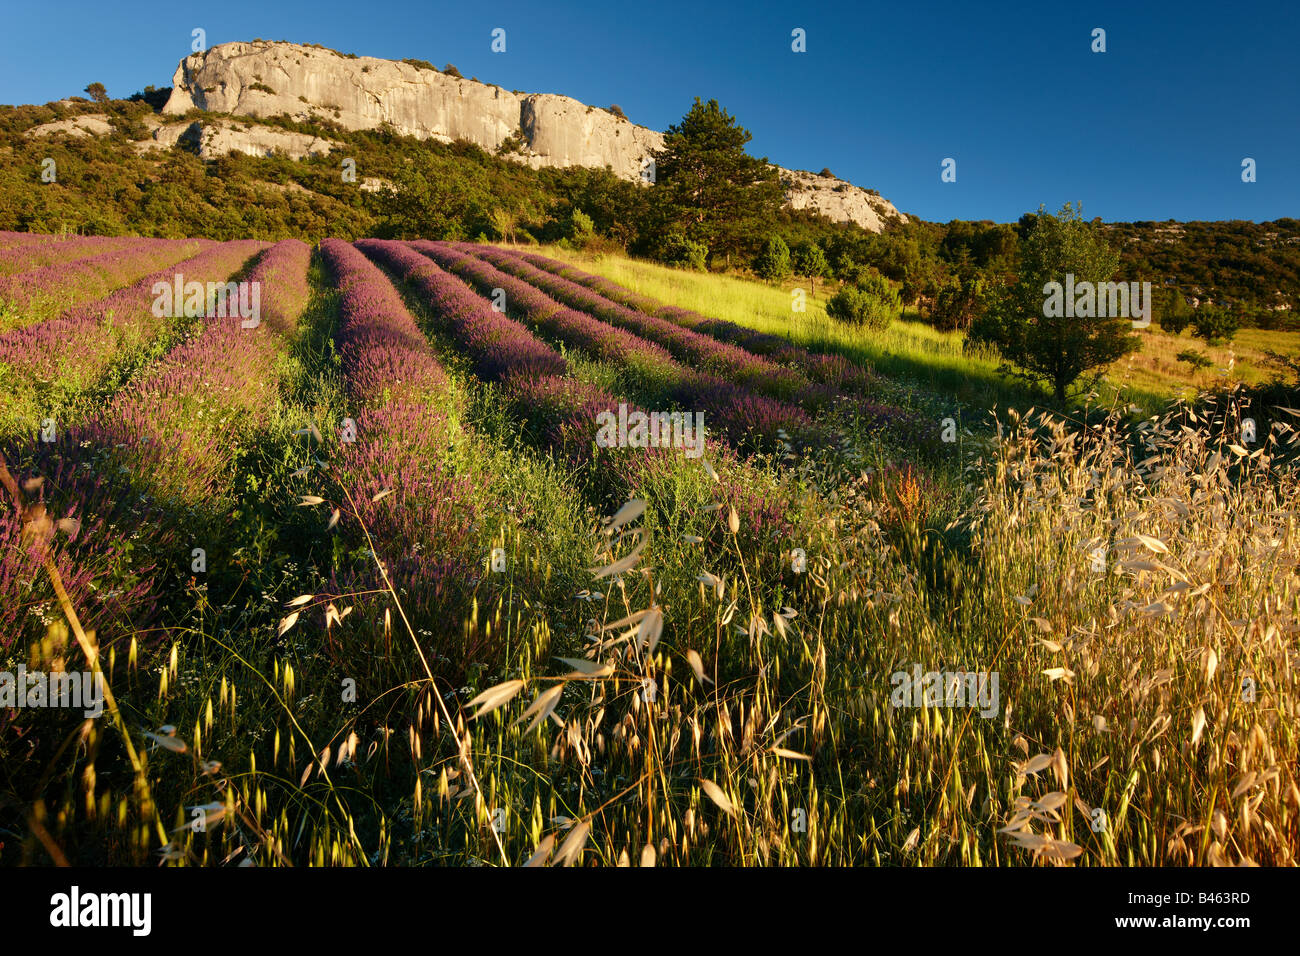 rows of lavender in a field near St-Saturnin-les-Apt, the Vaucluse, Provence, France - Stock Image